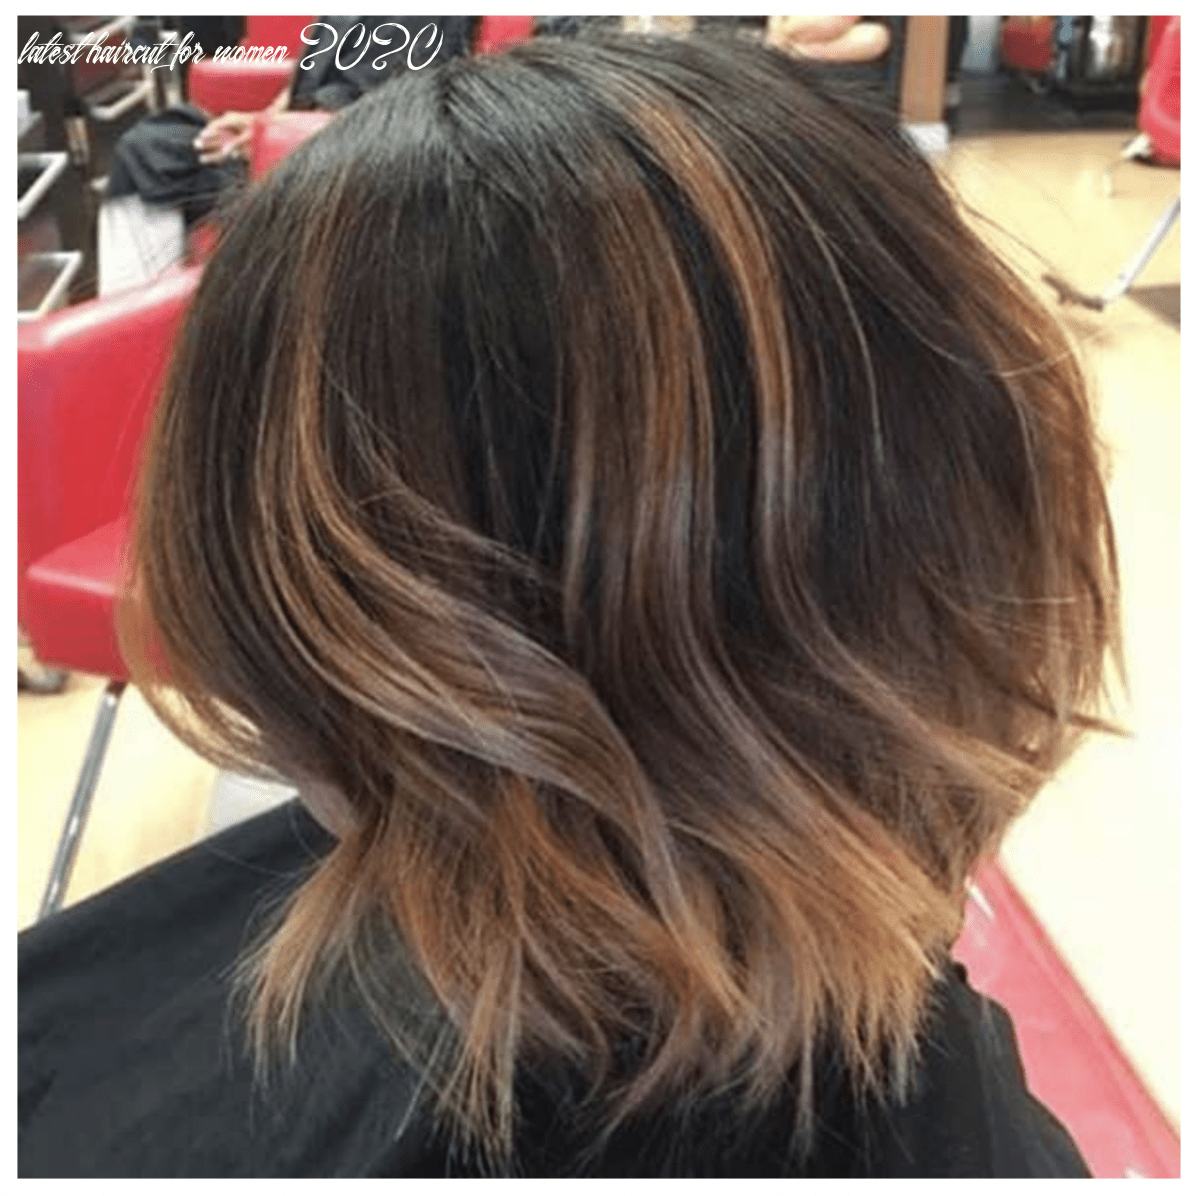 Latest Short Haircuts for Women 10 - LatestHairstylePedia.com